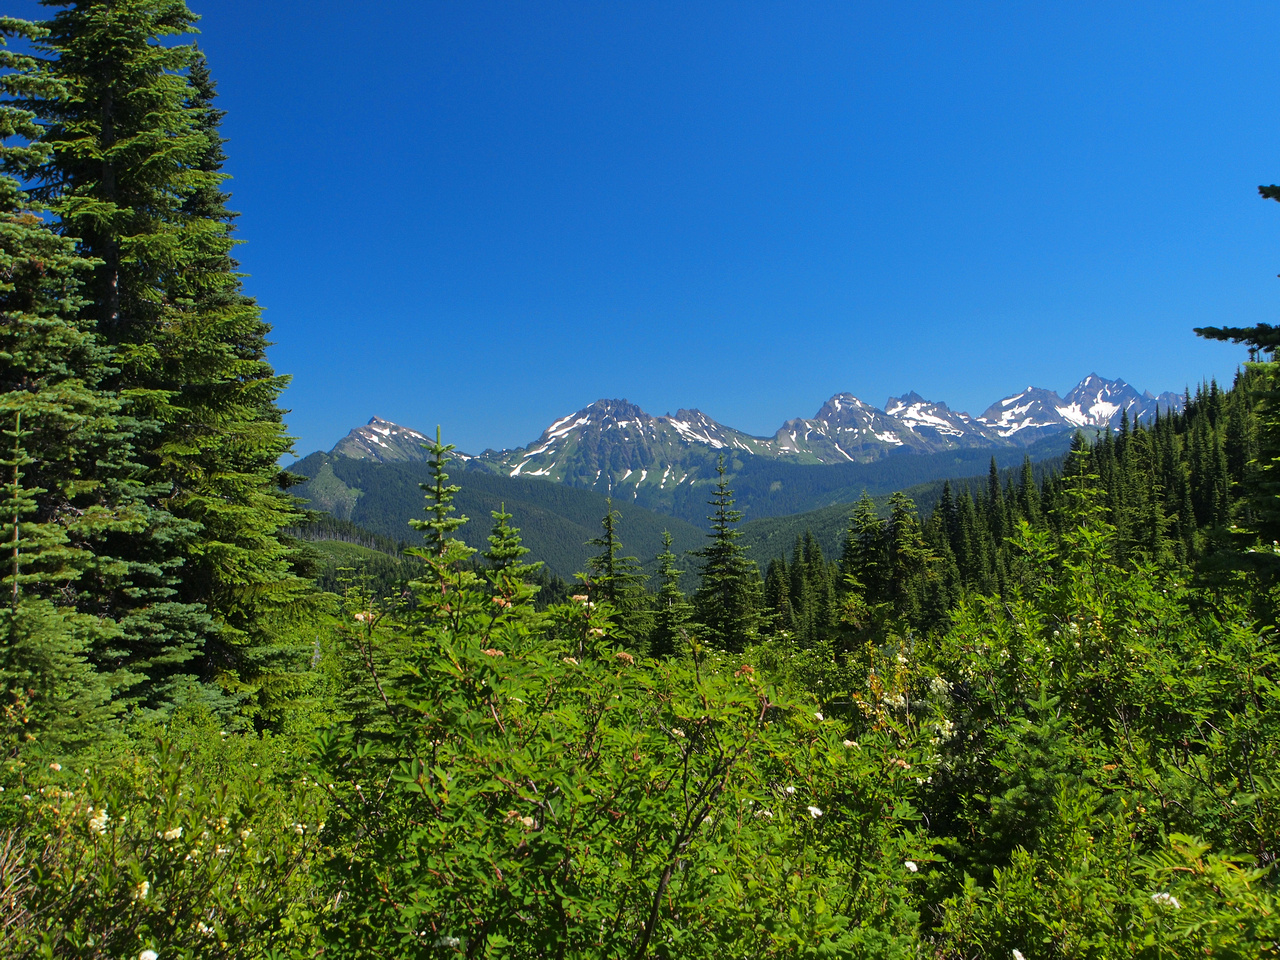 Looking at the Cheam Range. From left to right, Cheam, Lady, Knight, Baby Munday, Steward, The Still, Welch and Foley Peak.